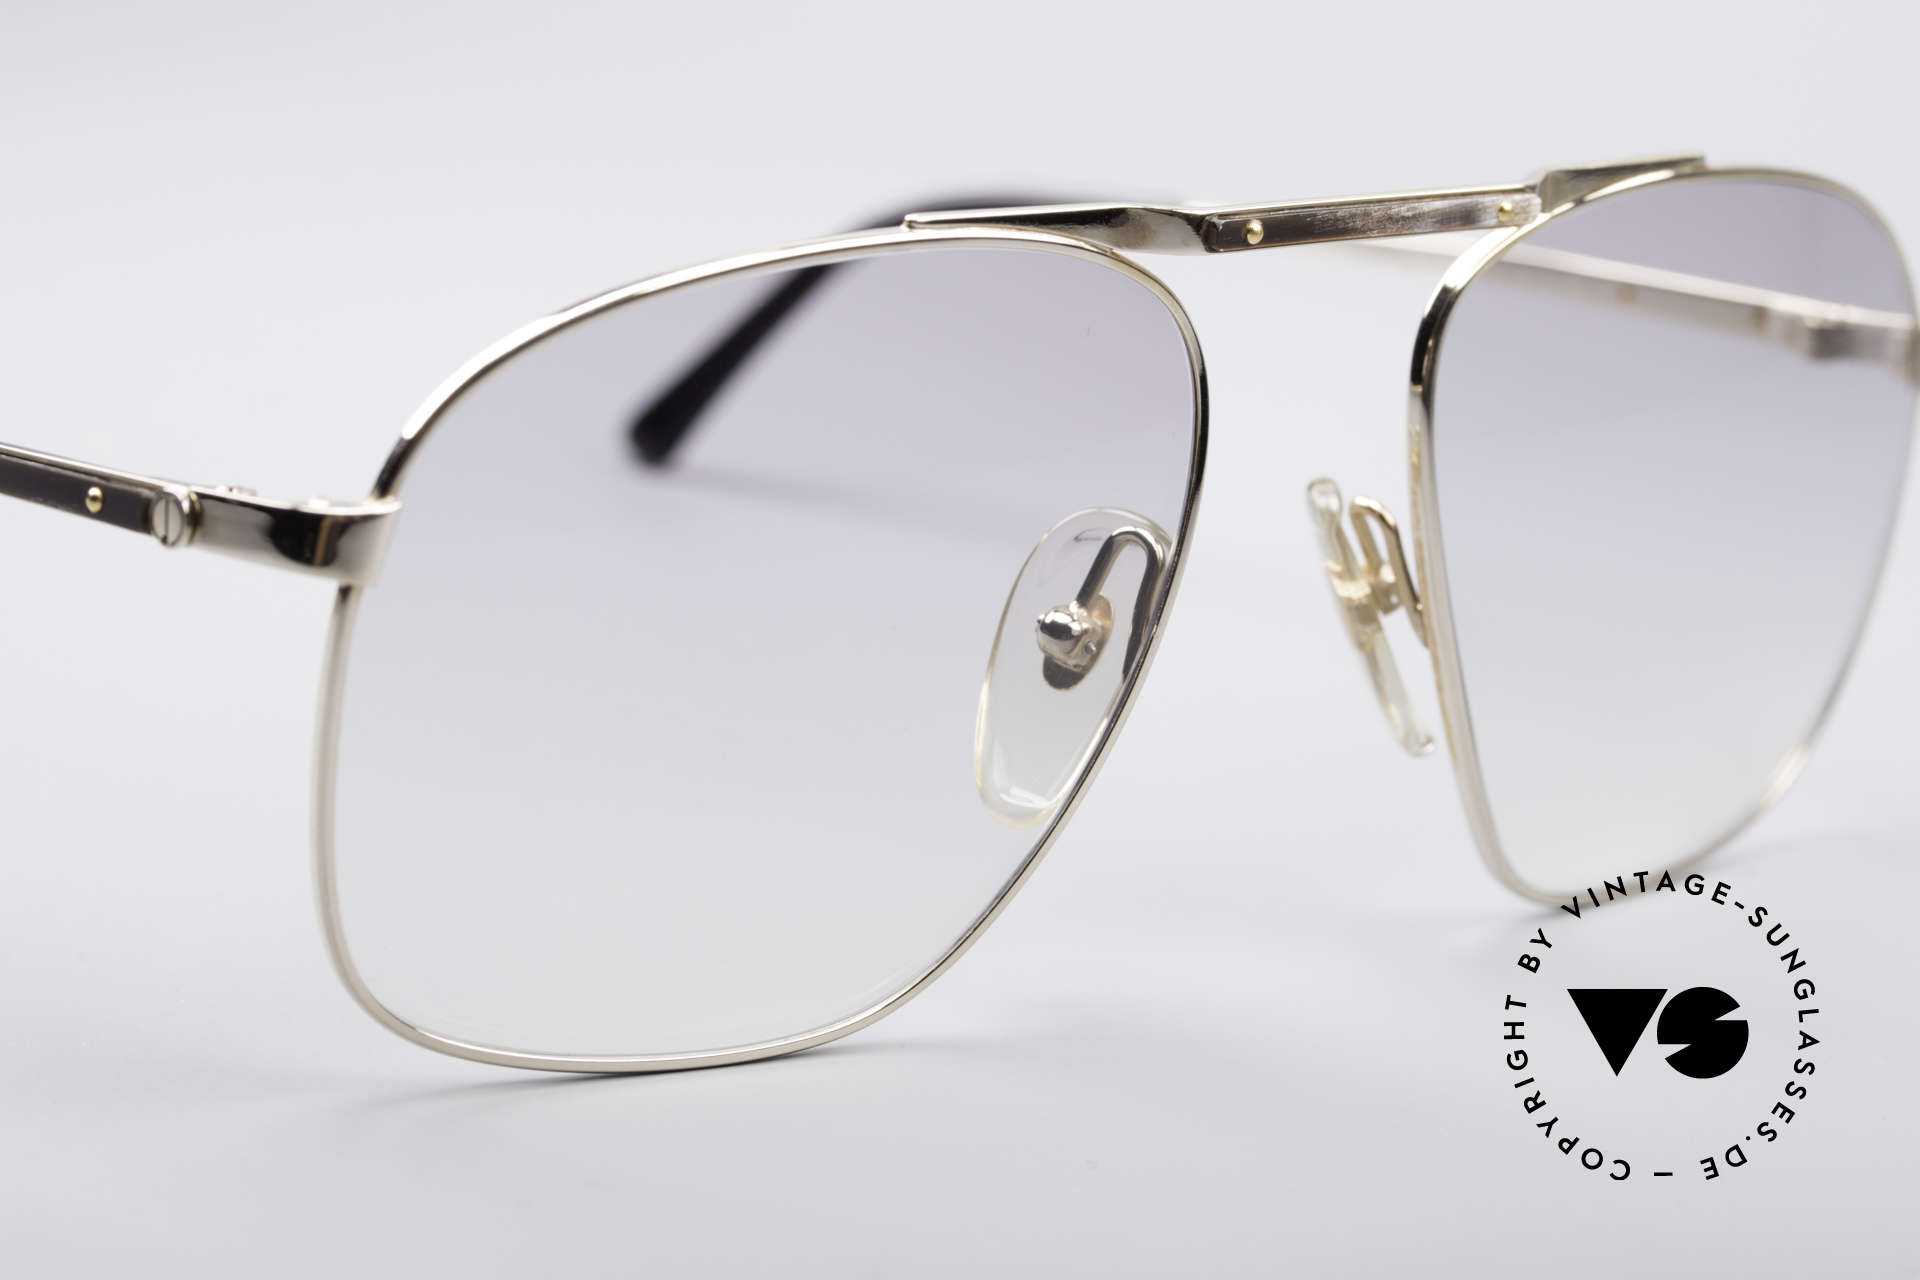 Dunhill 6046 80's Frame With Horn Appliqué, classic status = a prerequisite for all Dunhill designs, Made for Men